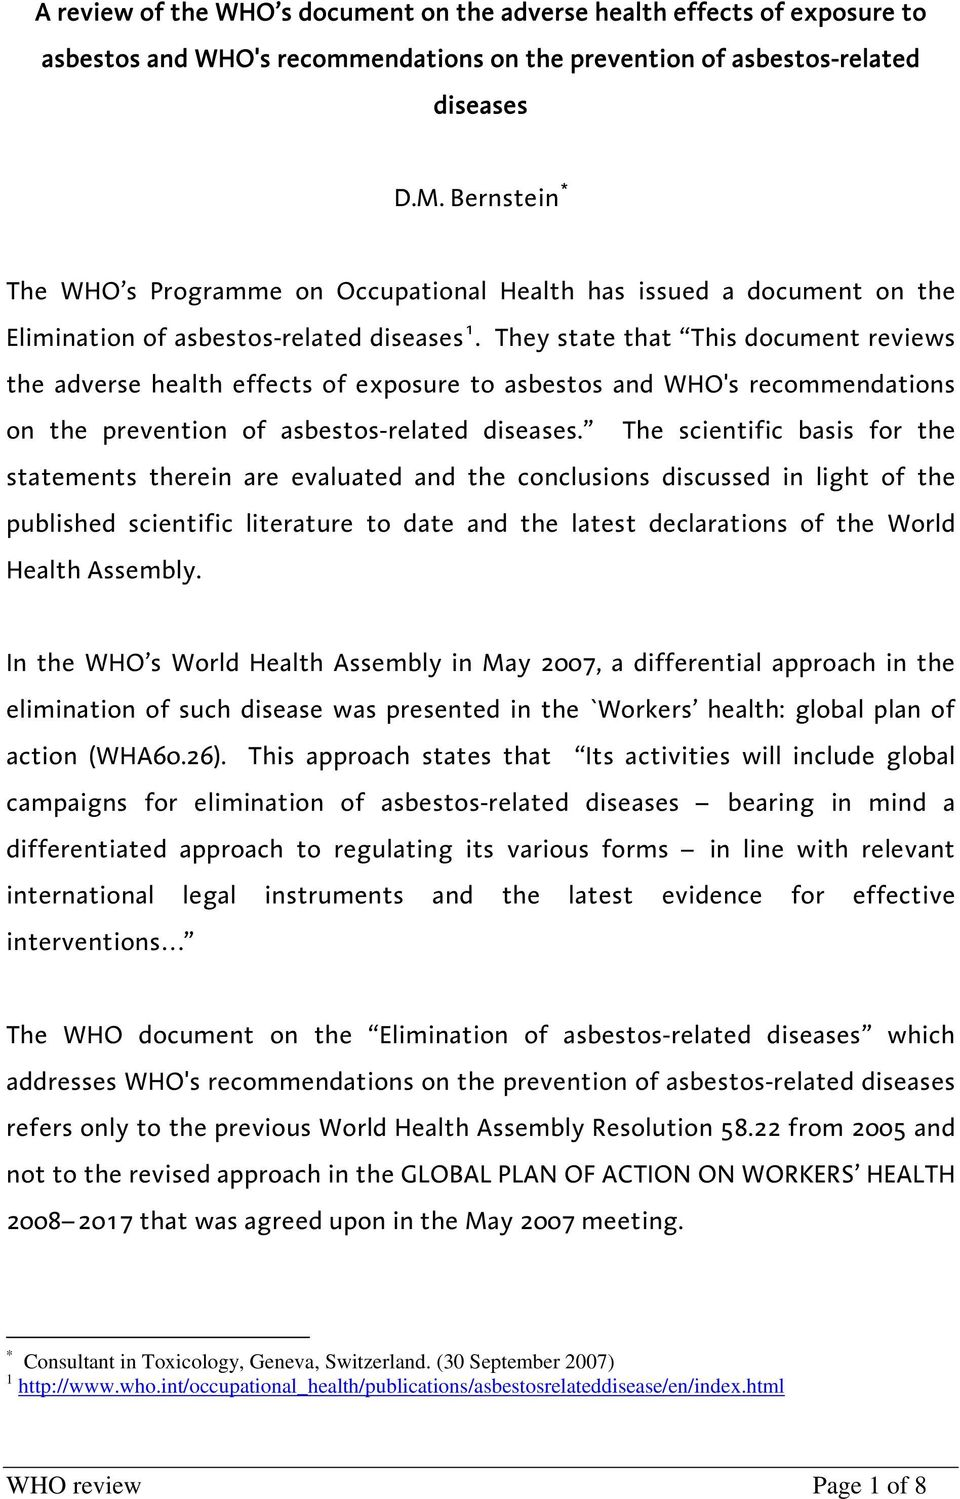 They state that This document reviews the adverse health effects of exposure to asbestos and WHO's recommendations on the prevention of asbestos-related diseases.